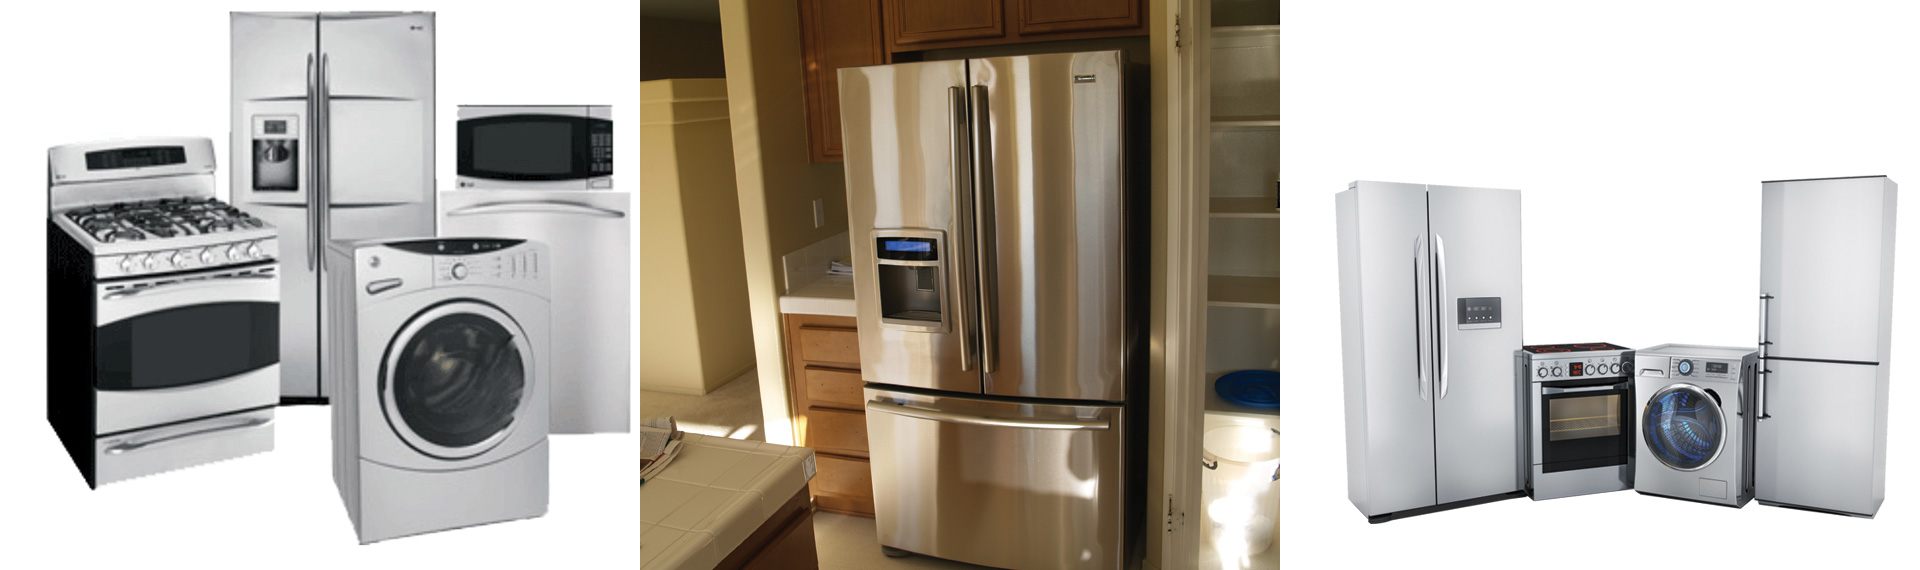 Appliance Care New Albany OH